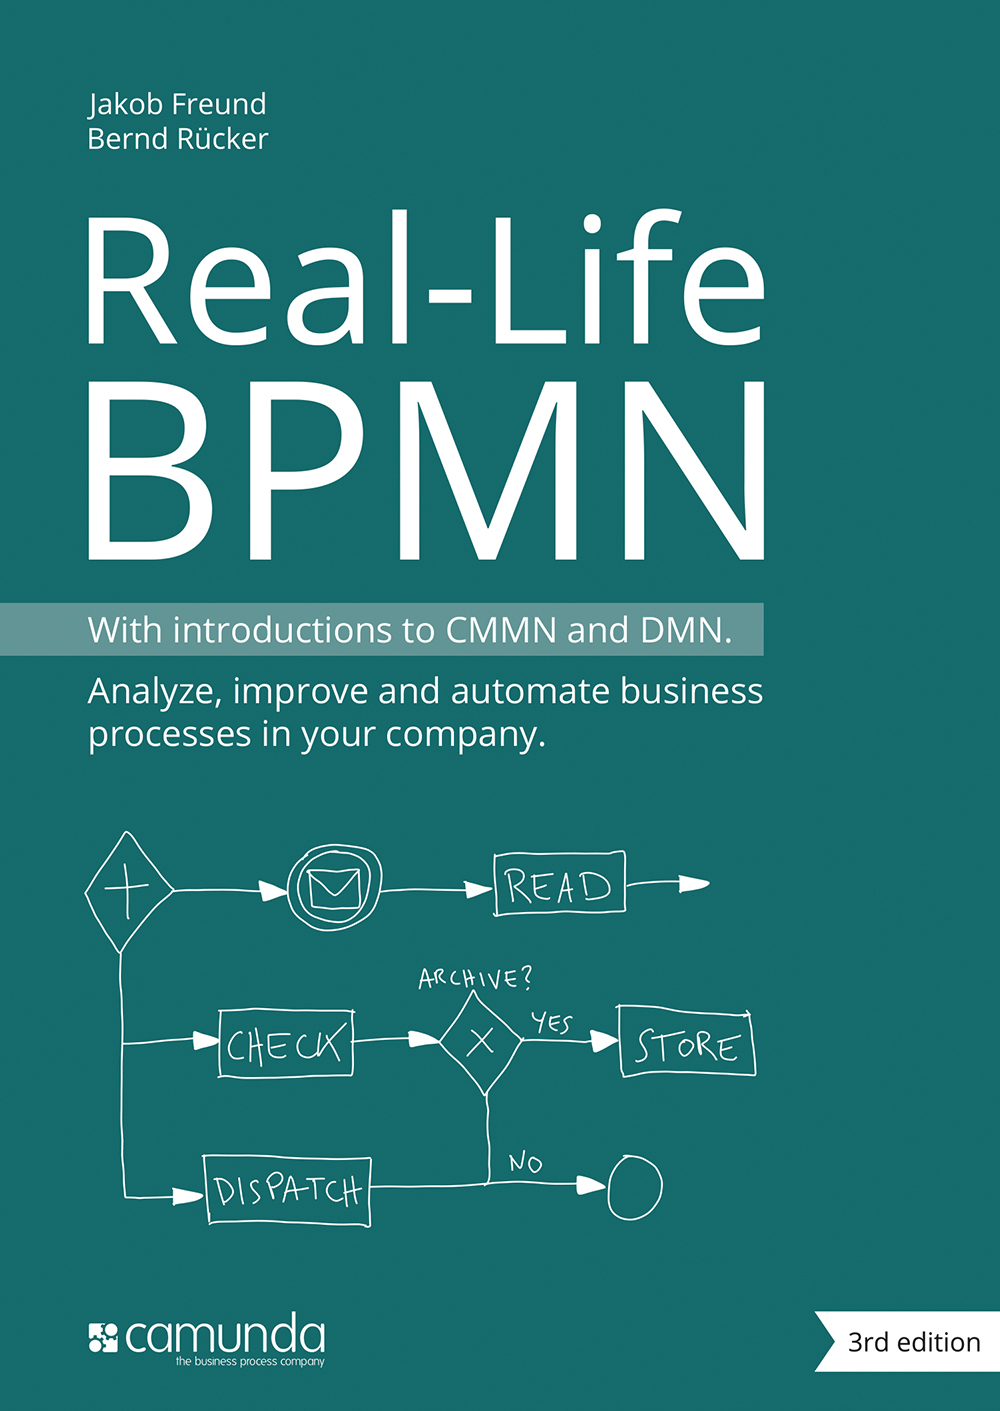 download this whitepaper - Bpmn Book